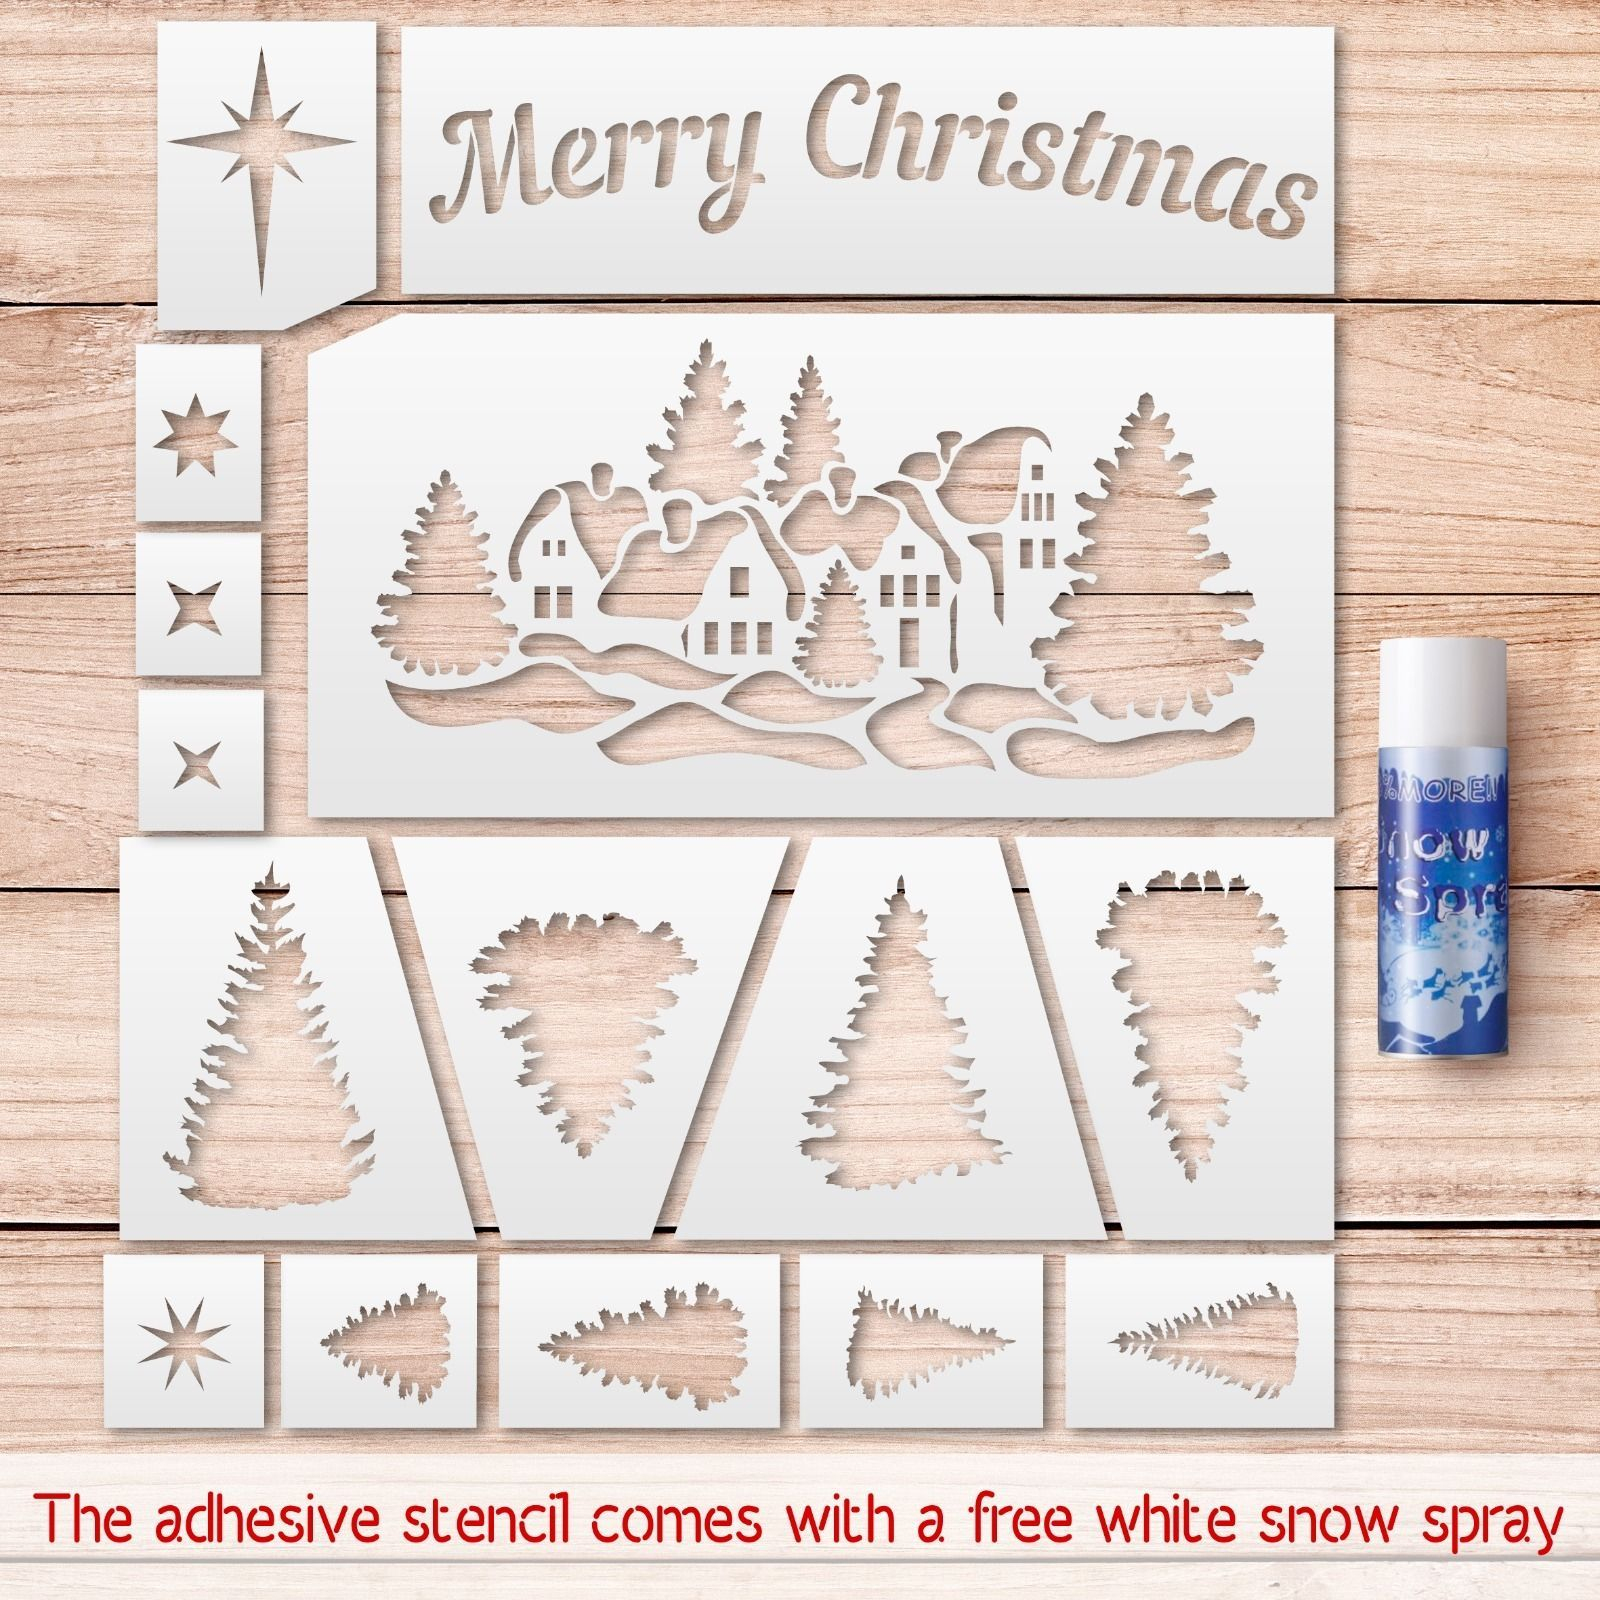 Merry Christmas Stencils Kit. Stencils For Windows Decoration. +Free - Merry Christmas Stencil Free Printable